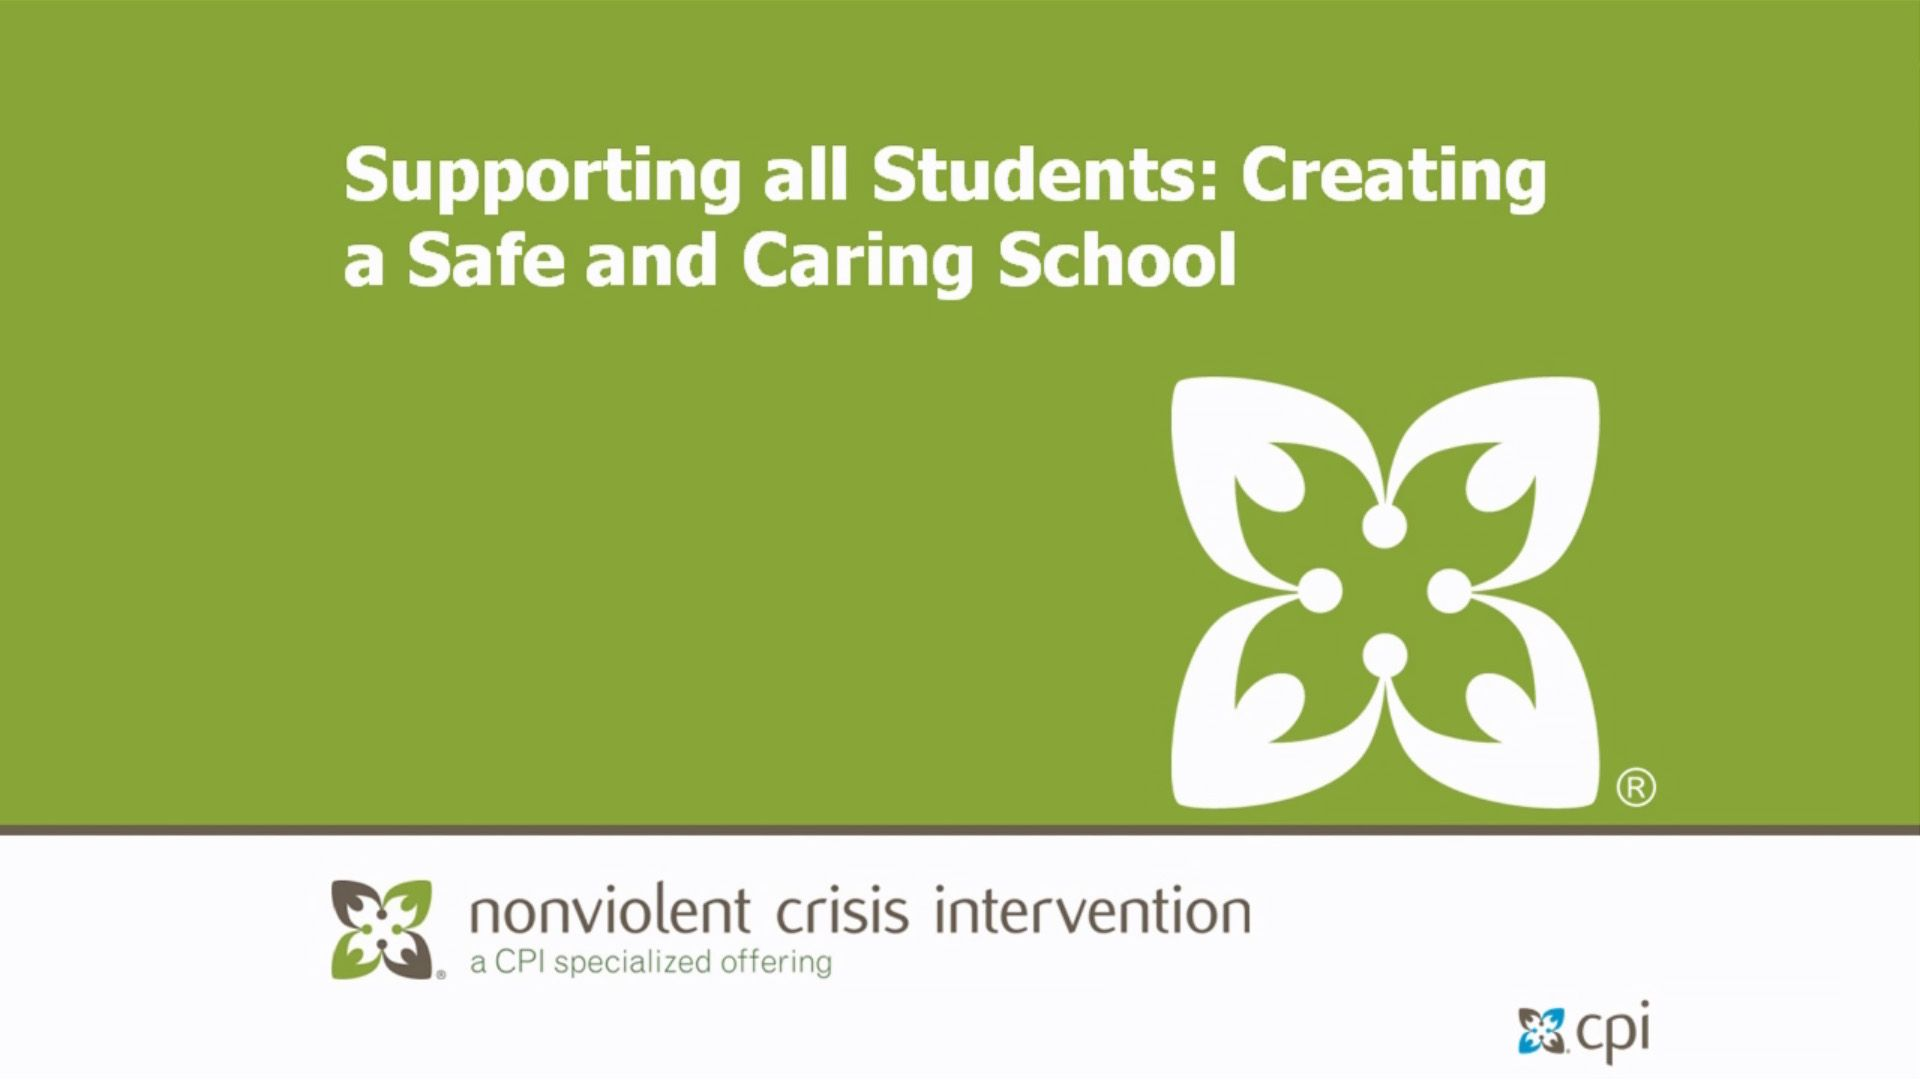 Supporting All Students: Creating a Safe and Caring School